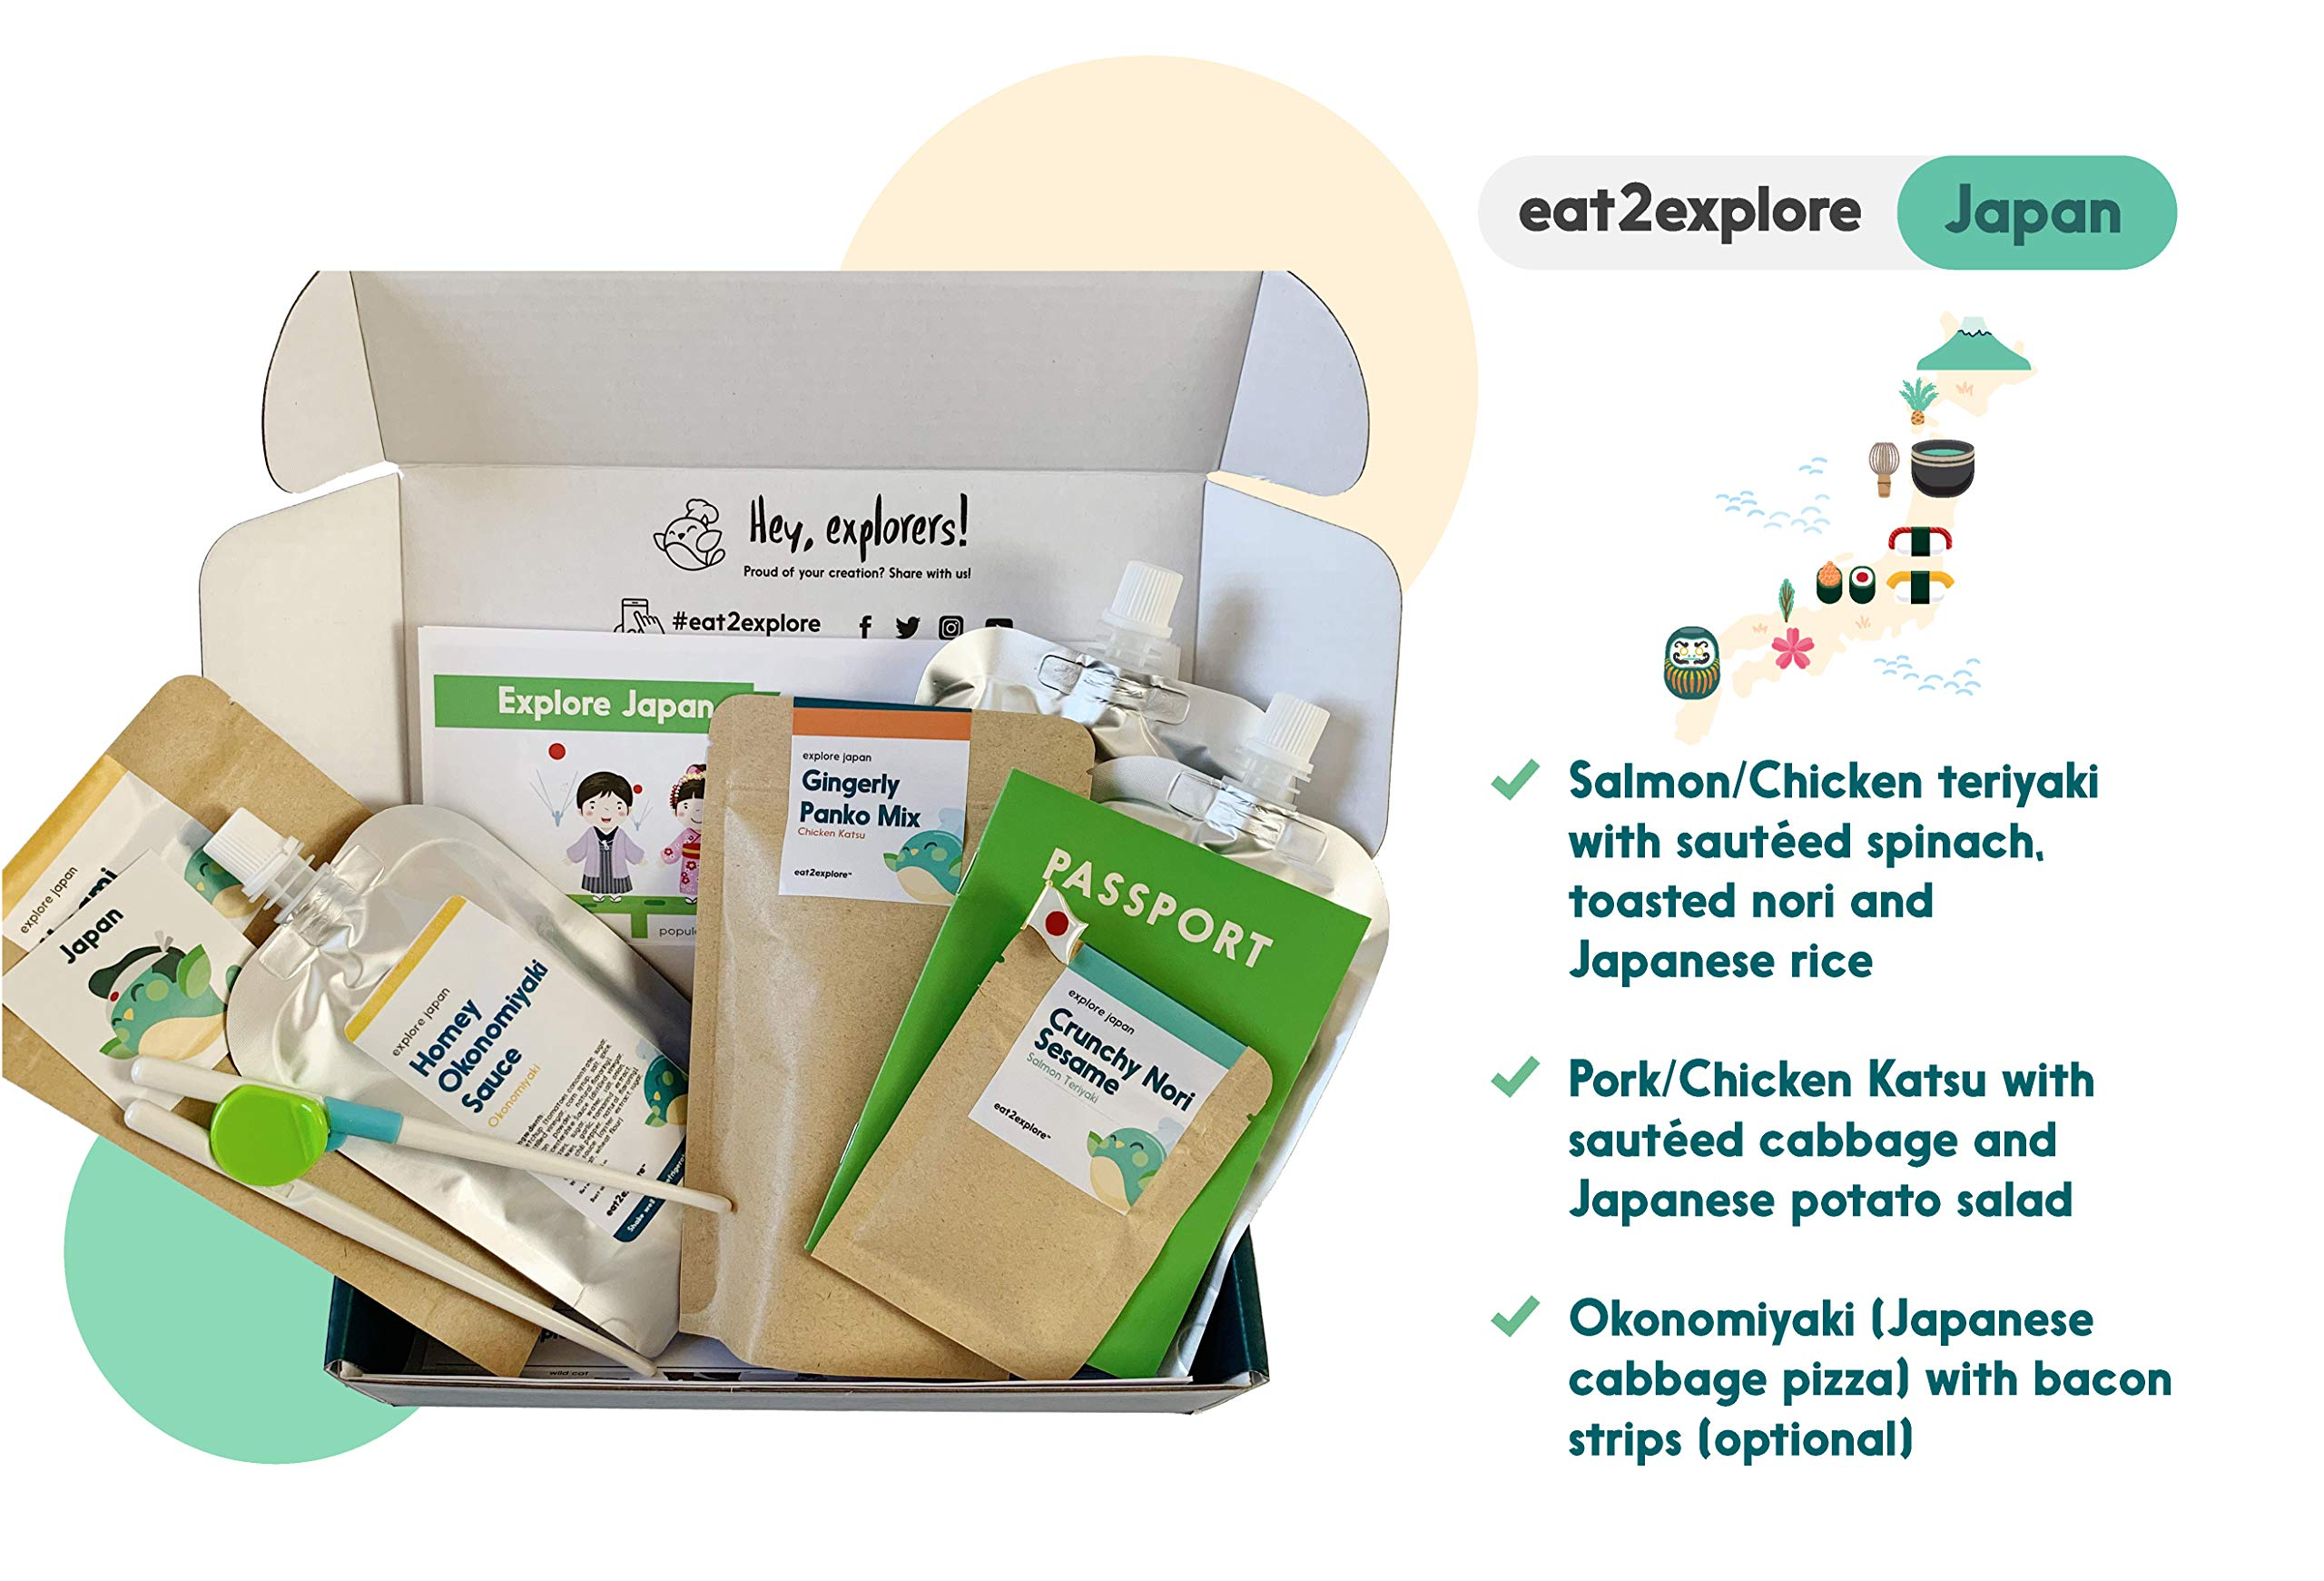 Eat2Explore Explore Japan Food Box – Essential Spice/Sauce/Grain Mixes from Japan/Box Includes 3 Kid-Friendly Recipes, Shopping List for Fresh Ingredients and Cooking Tools/Great Family Activity